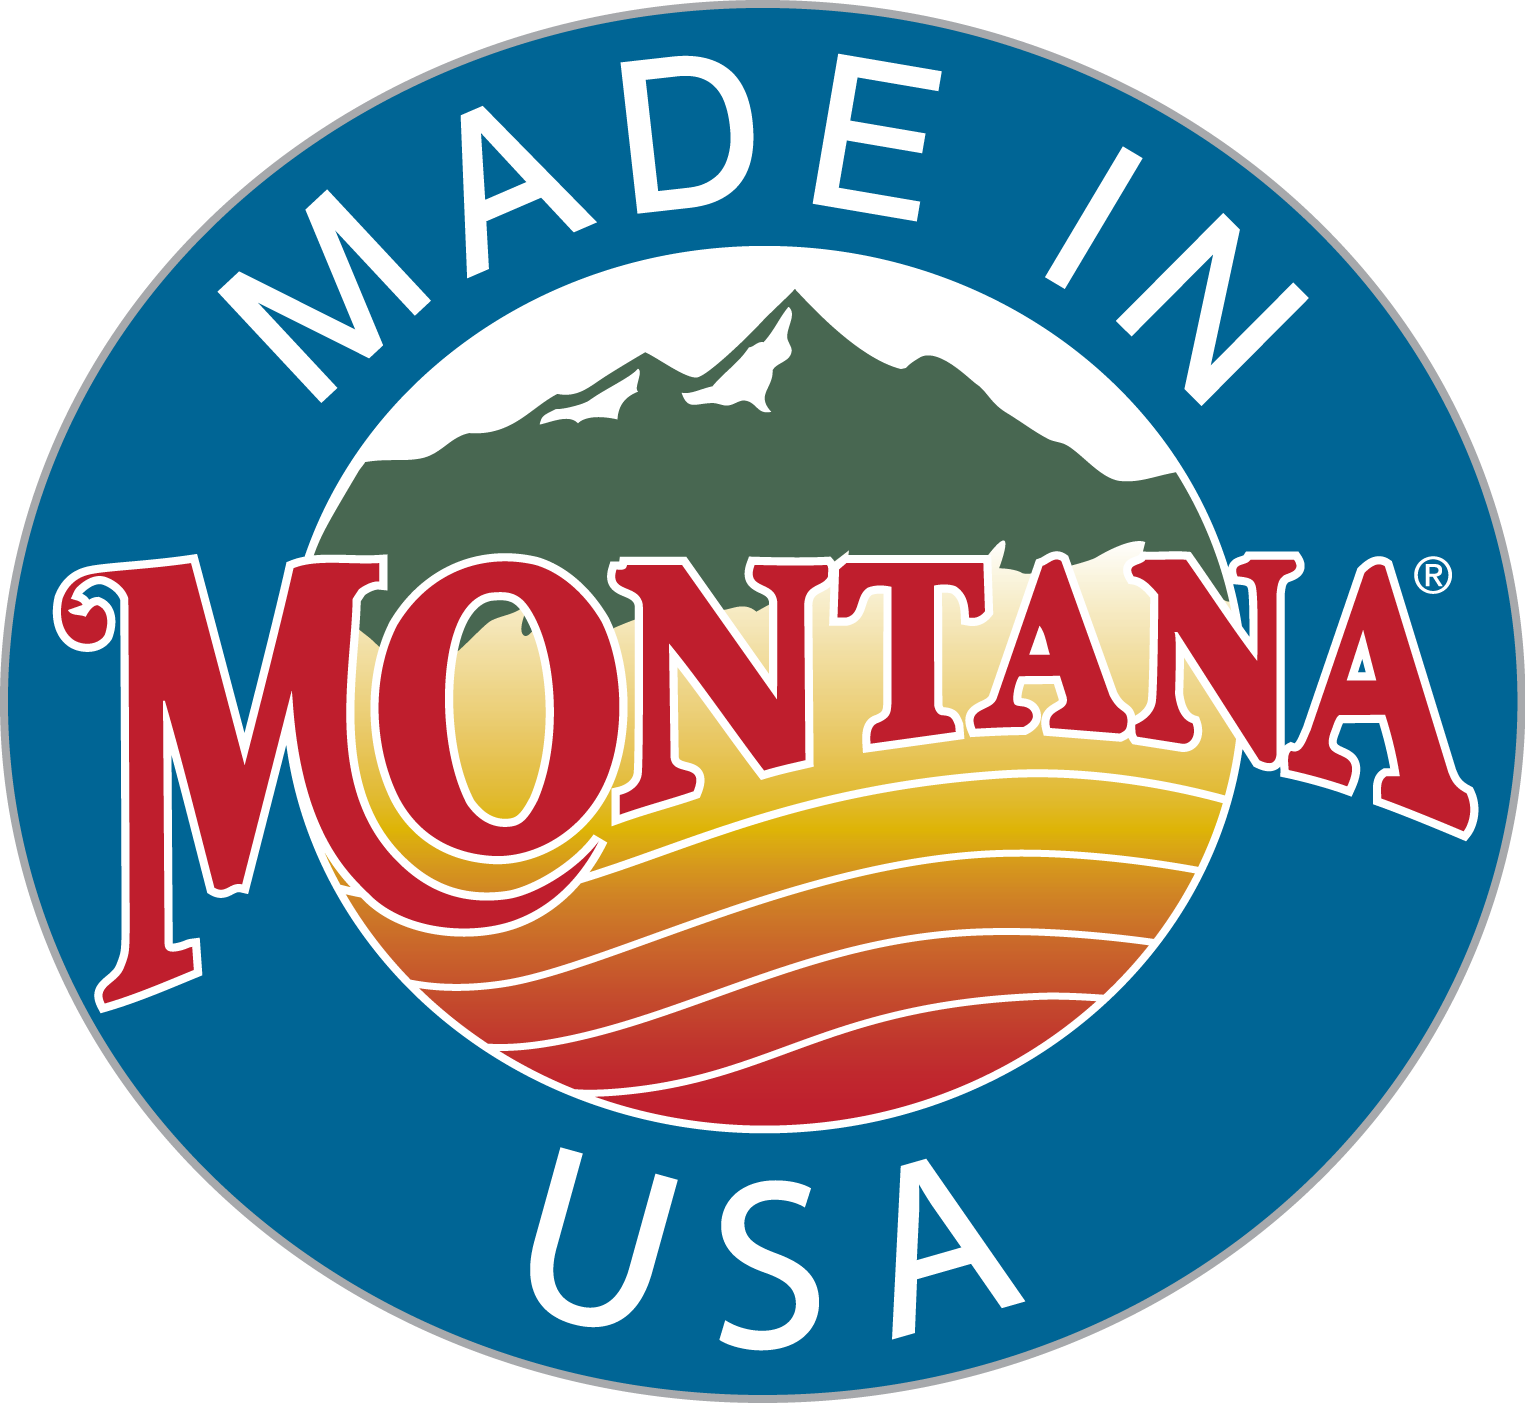 Made In Montana